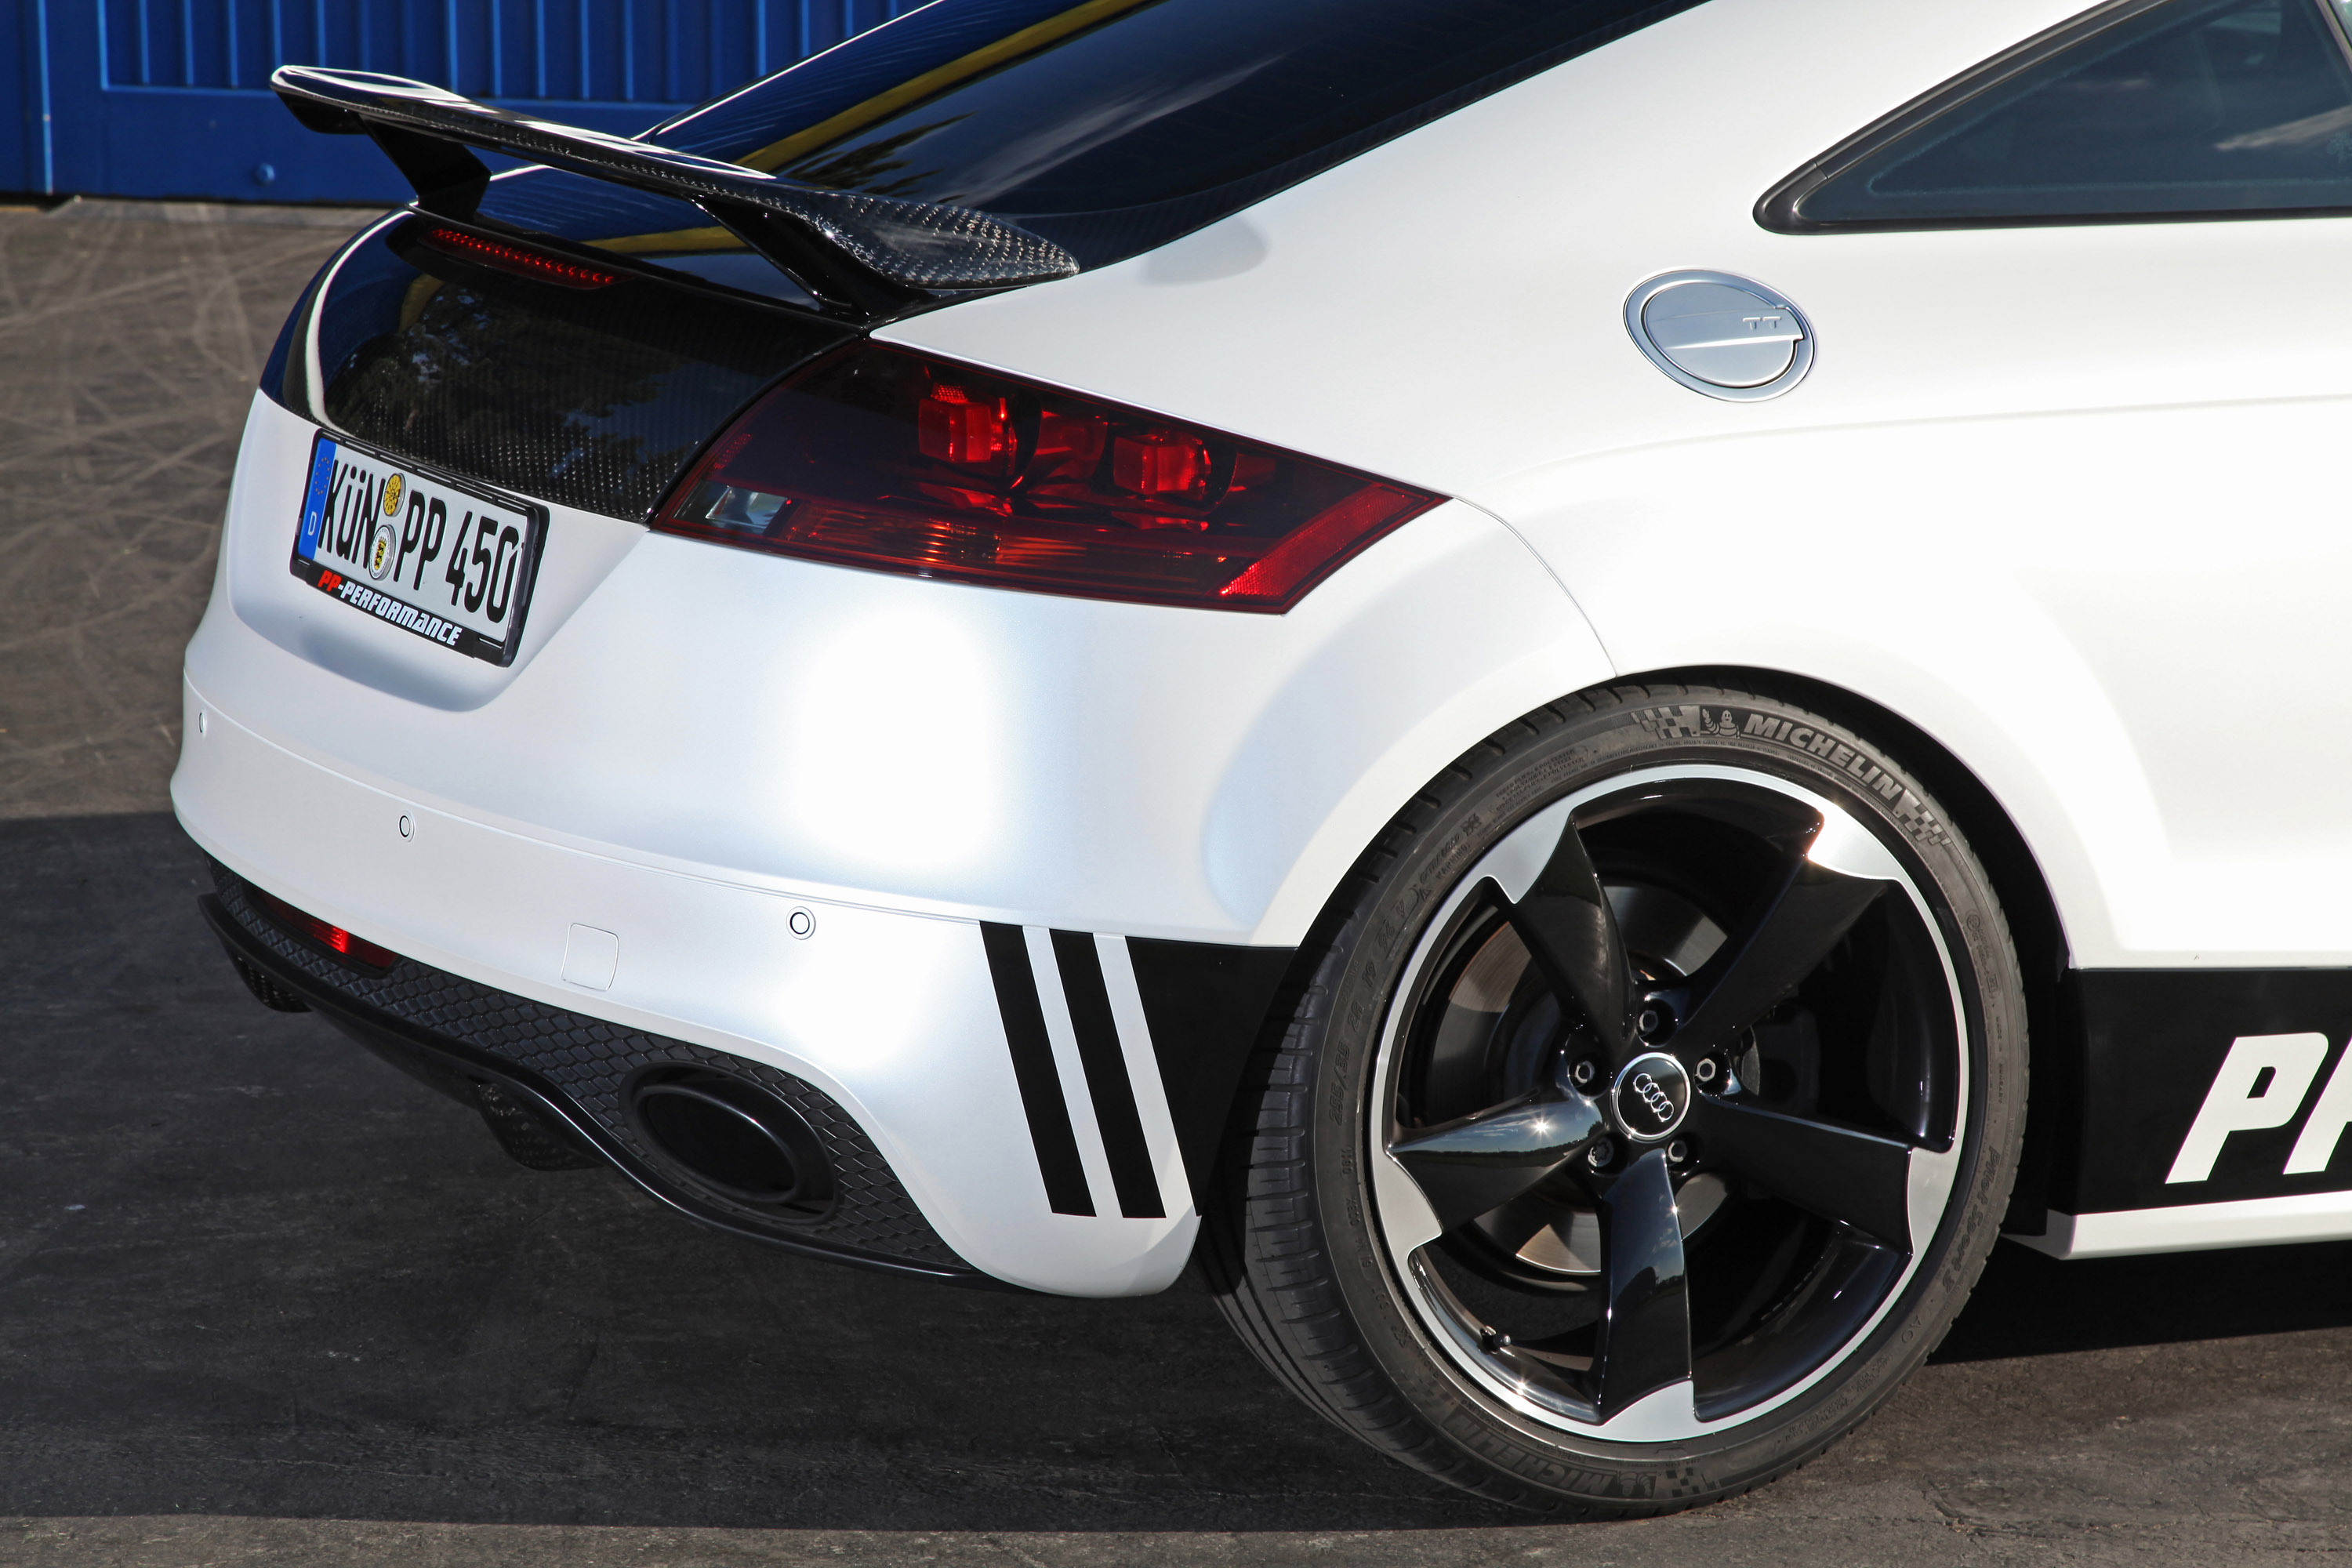 2013 Audi Tt Rs Black And White Edition By Pp Performance Top Speed